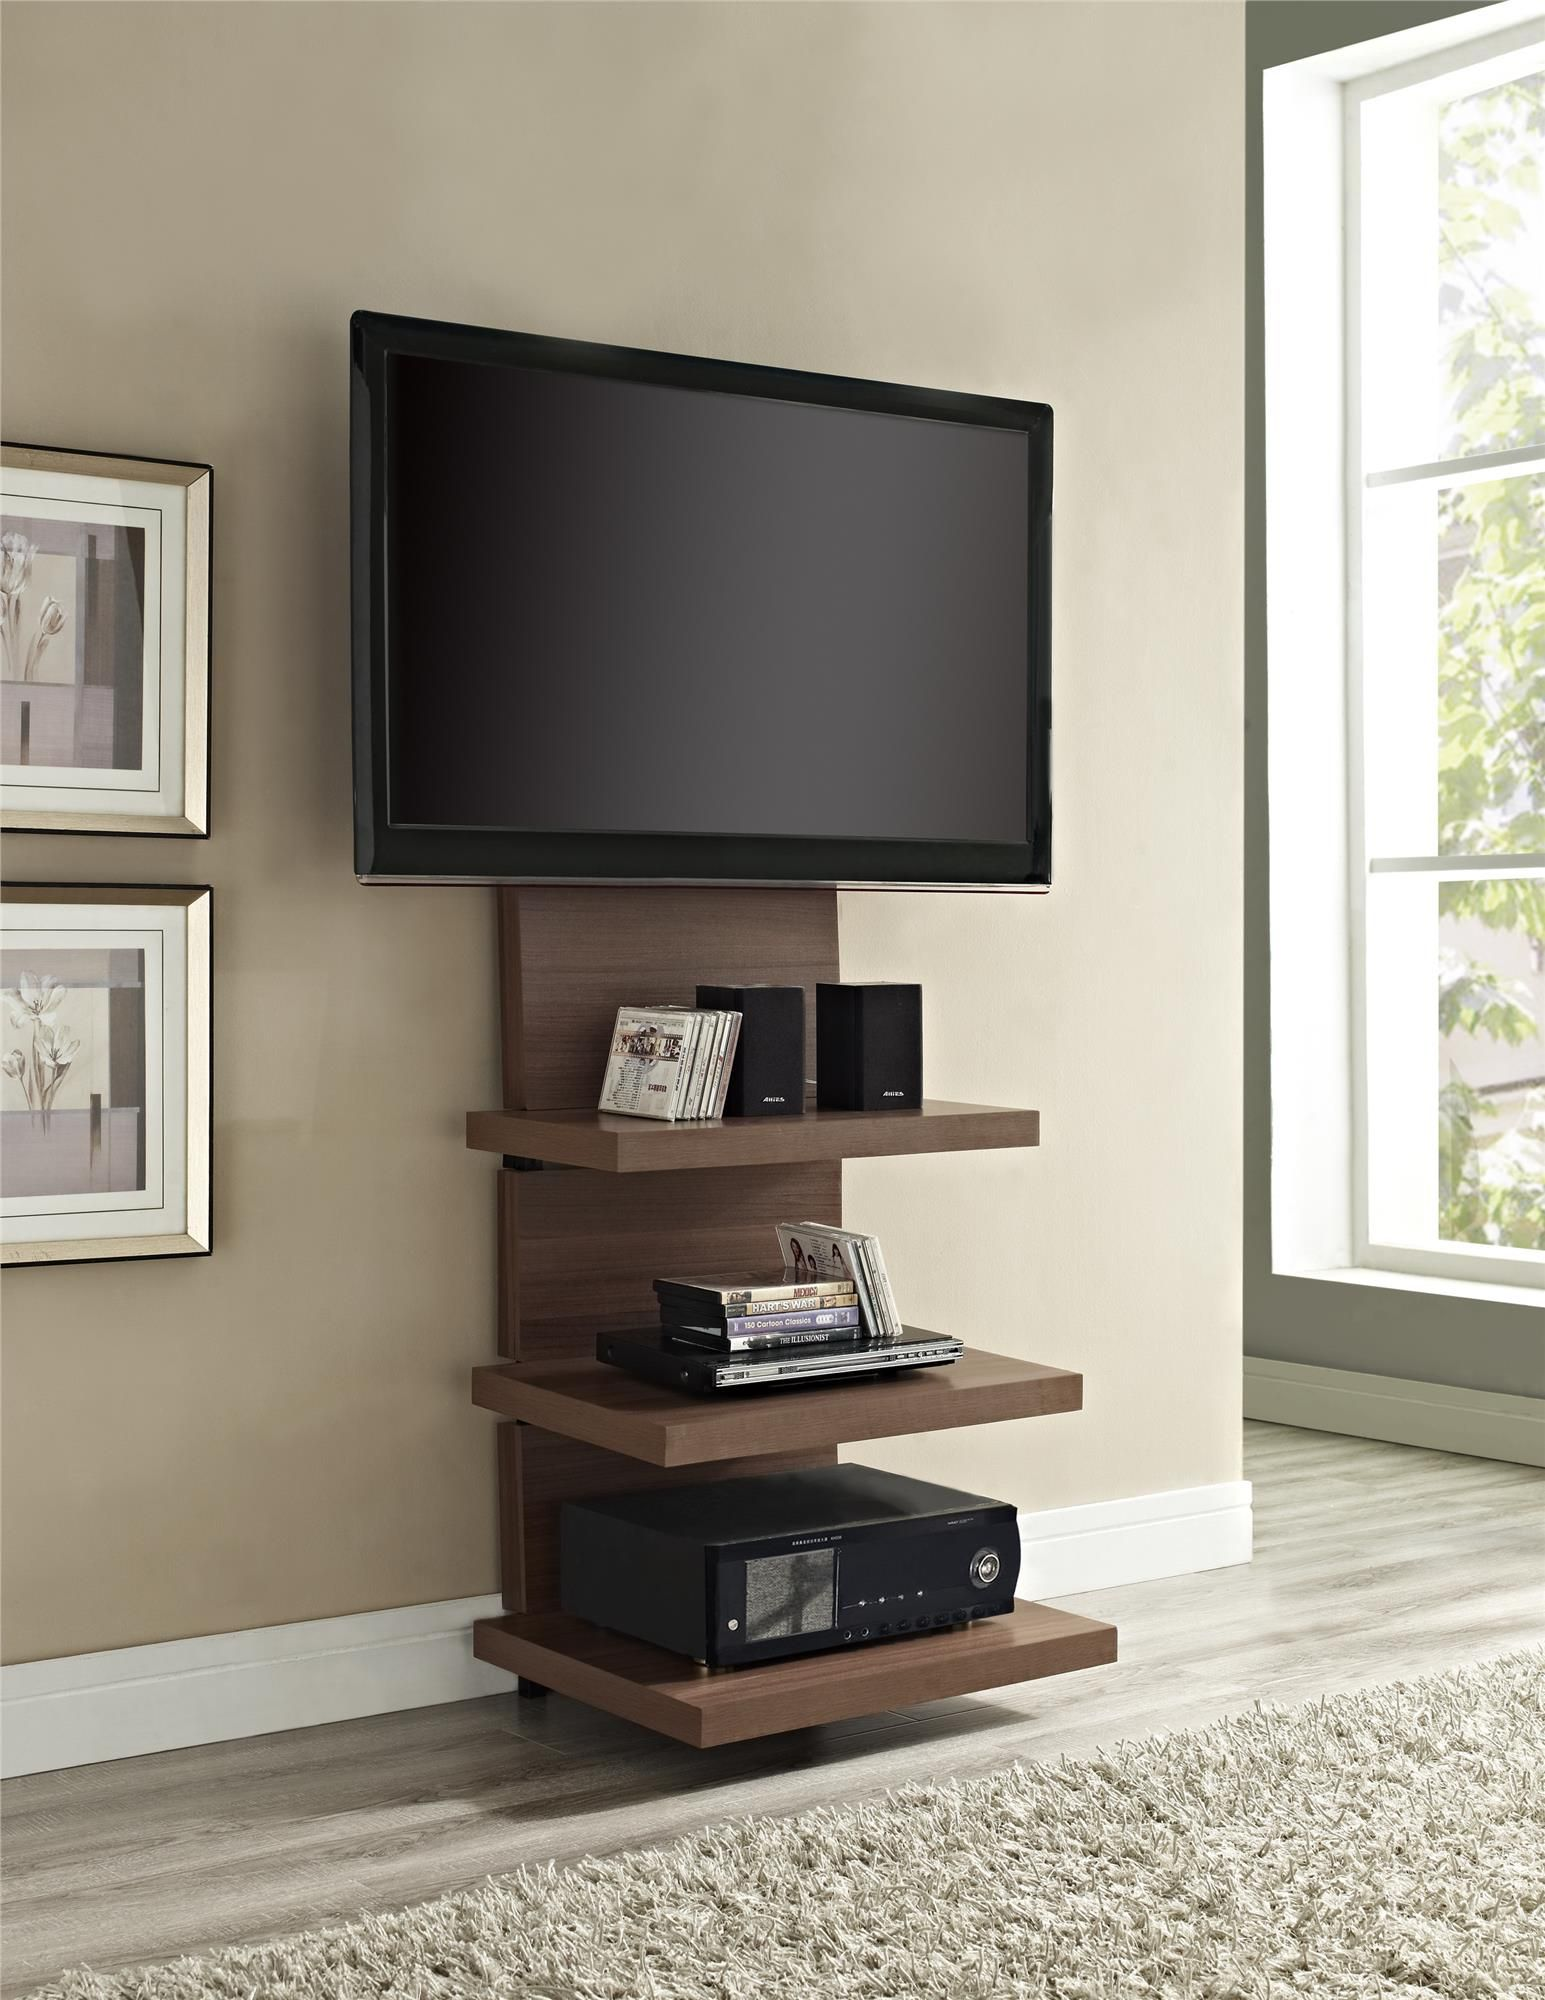 Beautiful Furniture, Cool Custom Modern Vertical Wood TV Stands With Floating Display Furniture  Storage Ideas ~